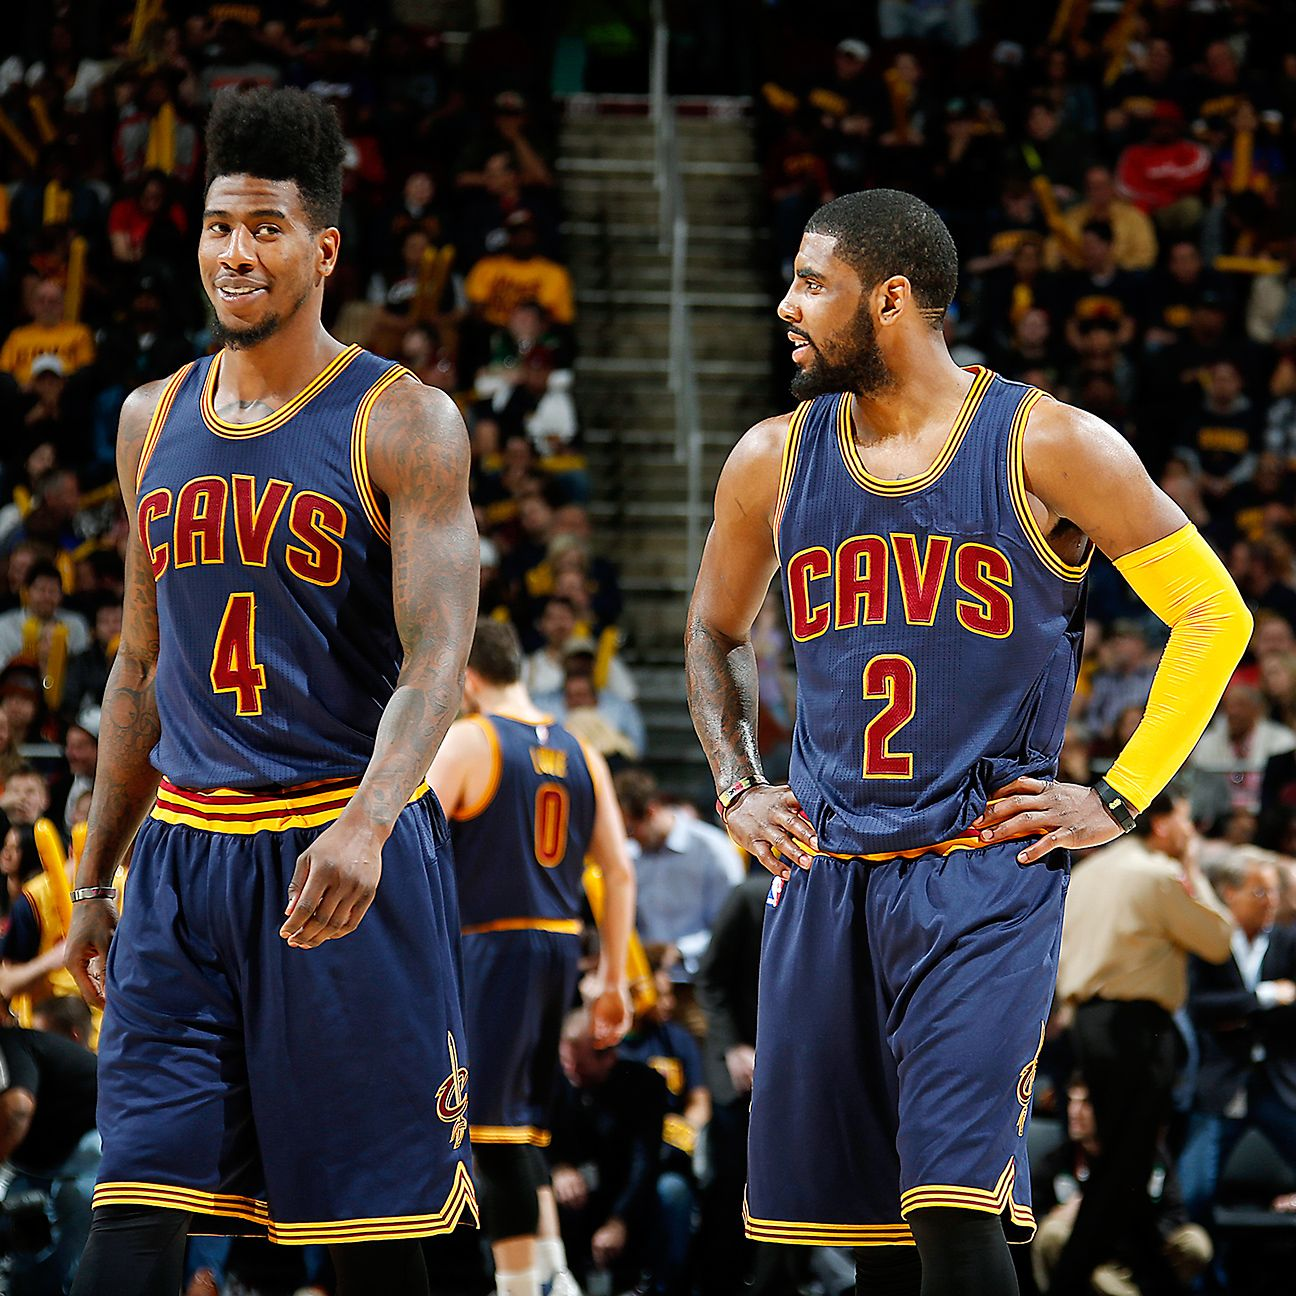 free ncaa basketball picks against the spread cavs jersey schedule